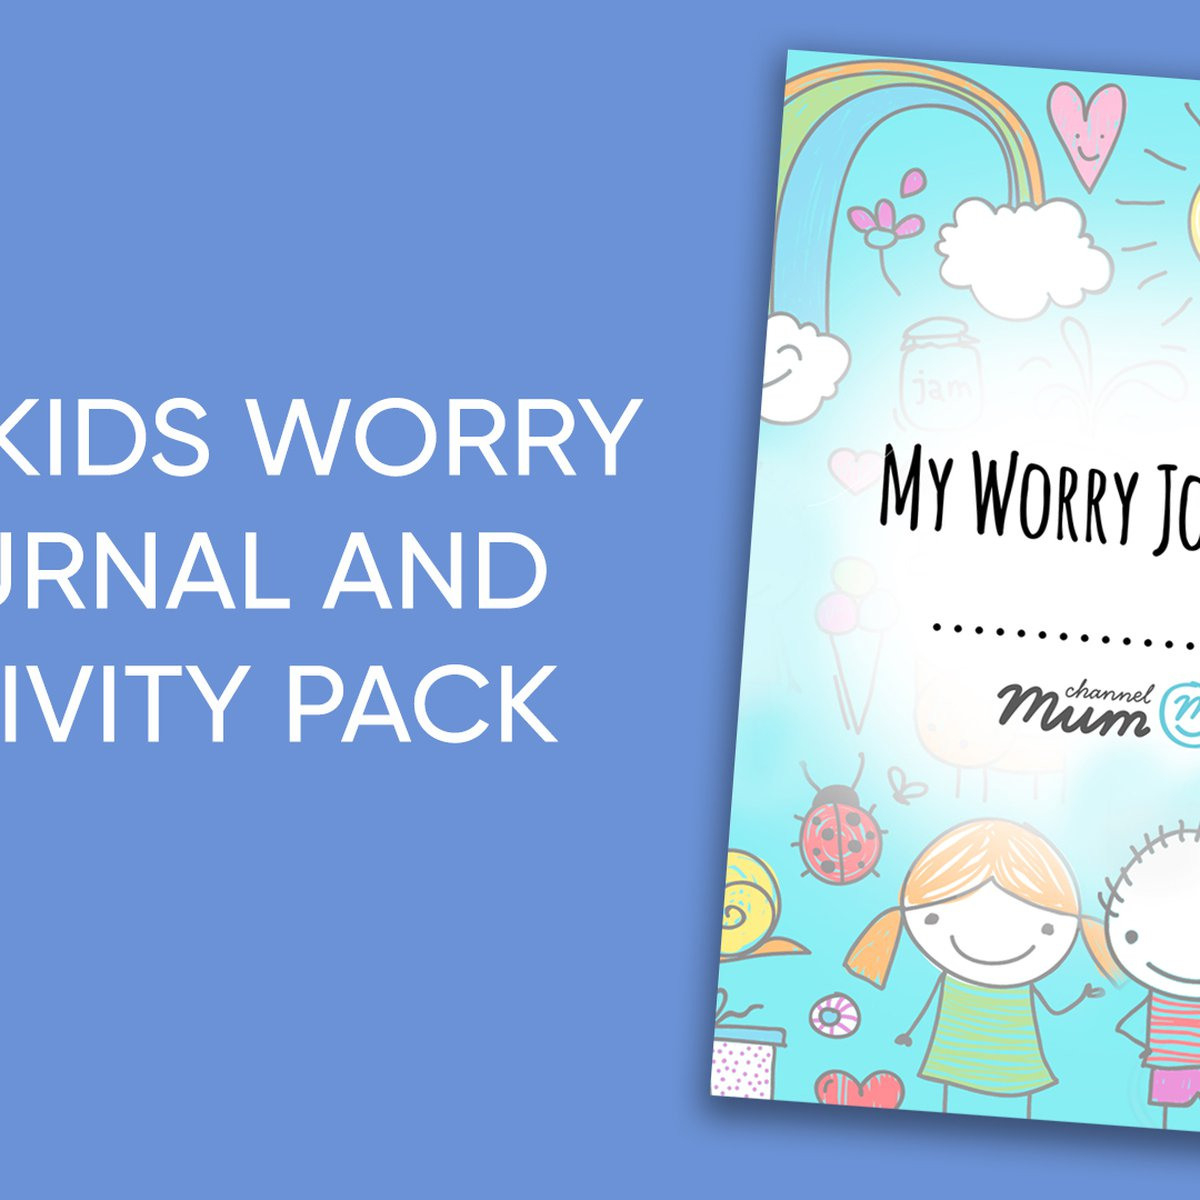 Download Our Free Anxiety Worksheets For Kids Channel Mum